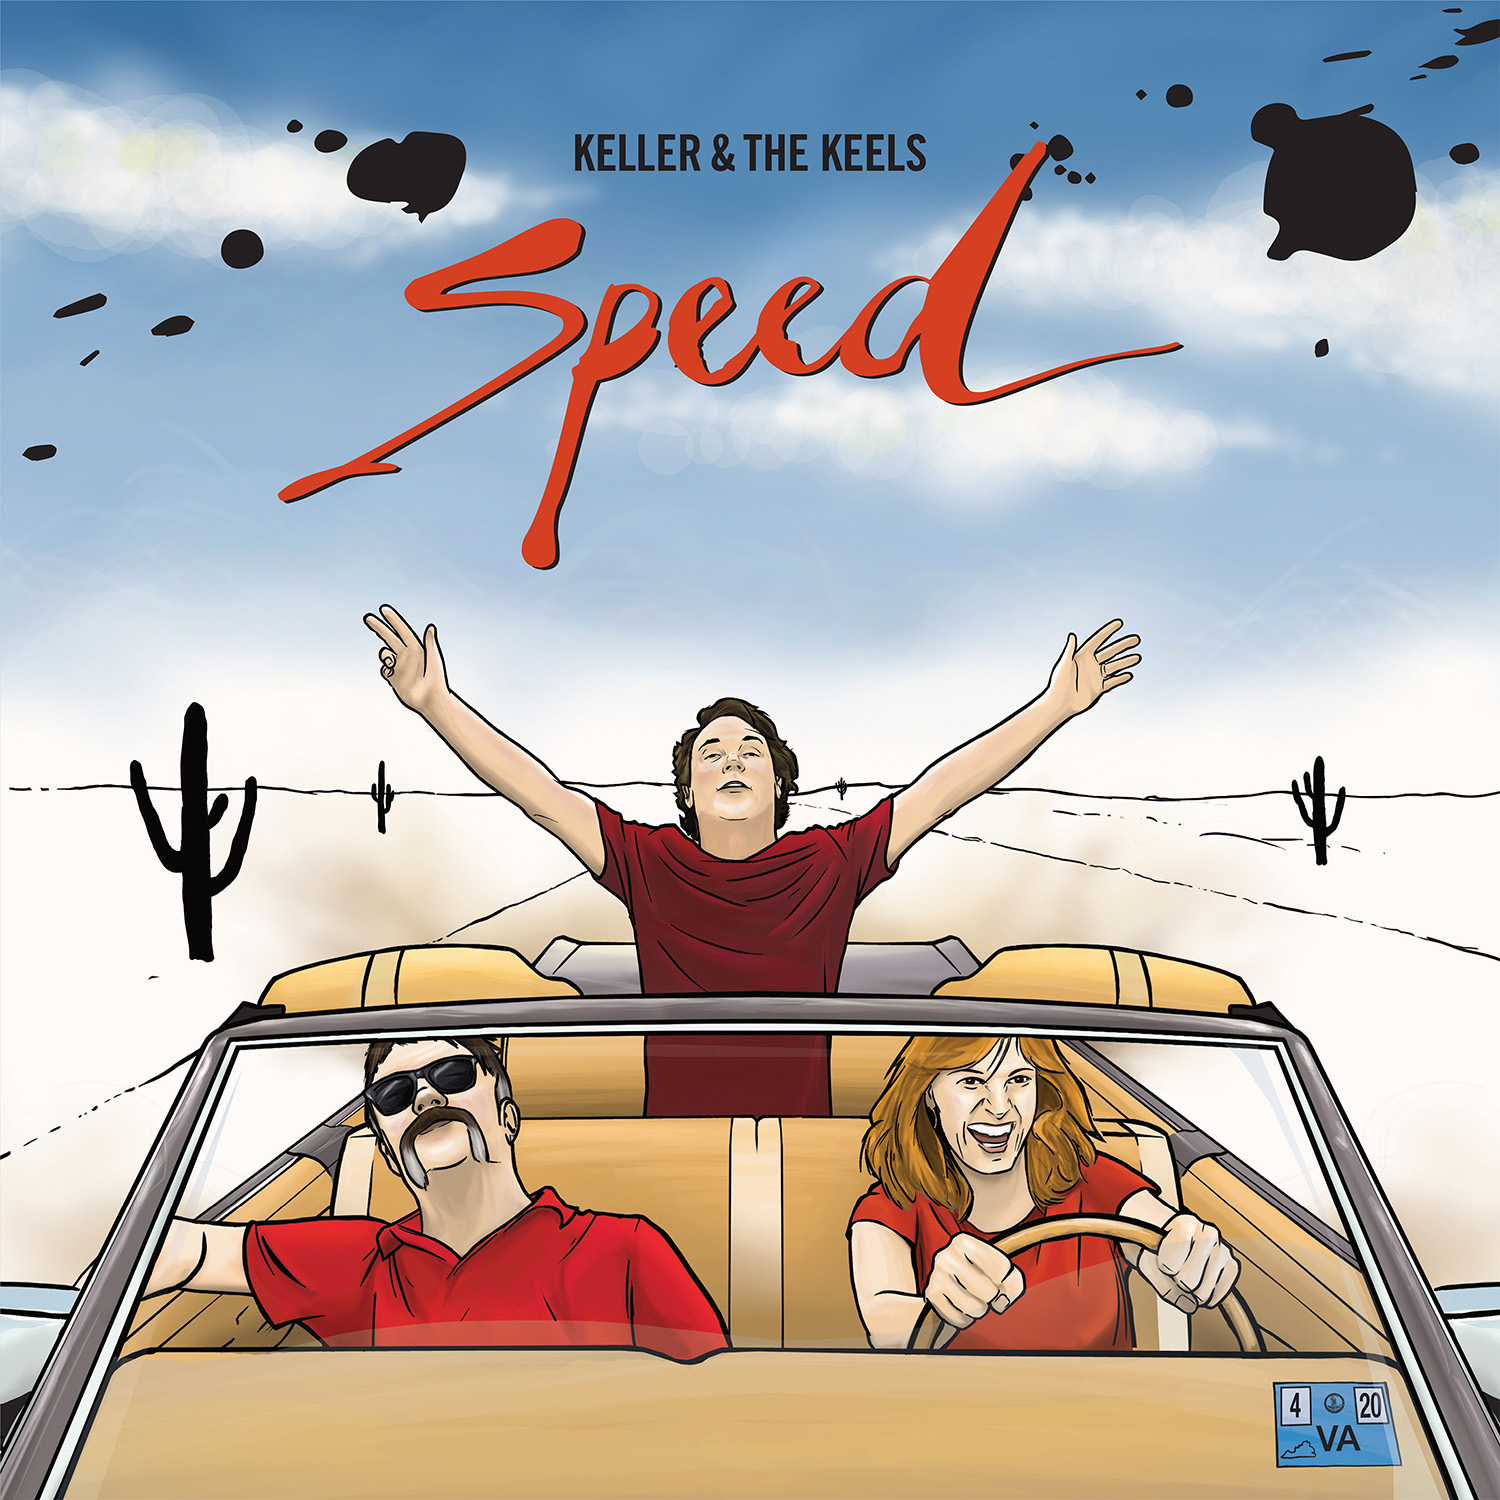 Interview and Album Review: Keller Williams Talks About His New Album SPEED (out 11/22), Looks Back on 25 Studio Albums and Discusses his 2020 Plans